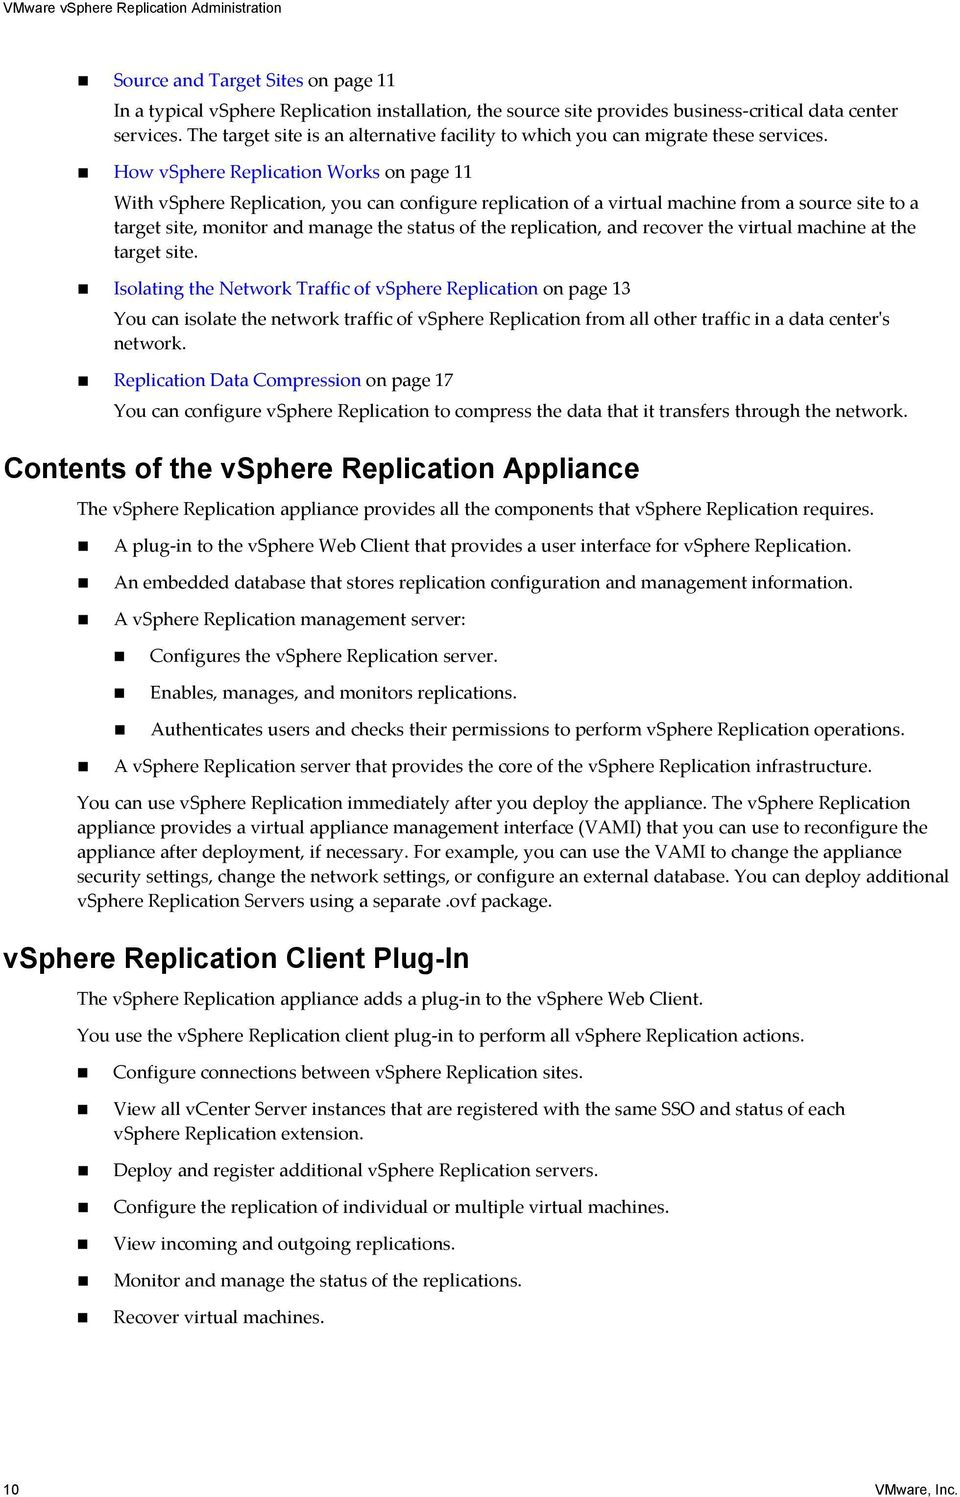 How vsphere Replication Works on page 11 With vsphere Replication, you can configure replication of a virtual machine from a source site to a target site, monitor and manage the status of the